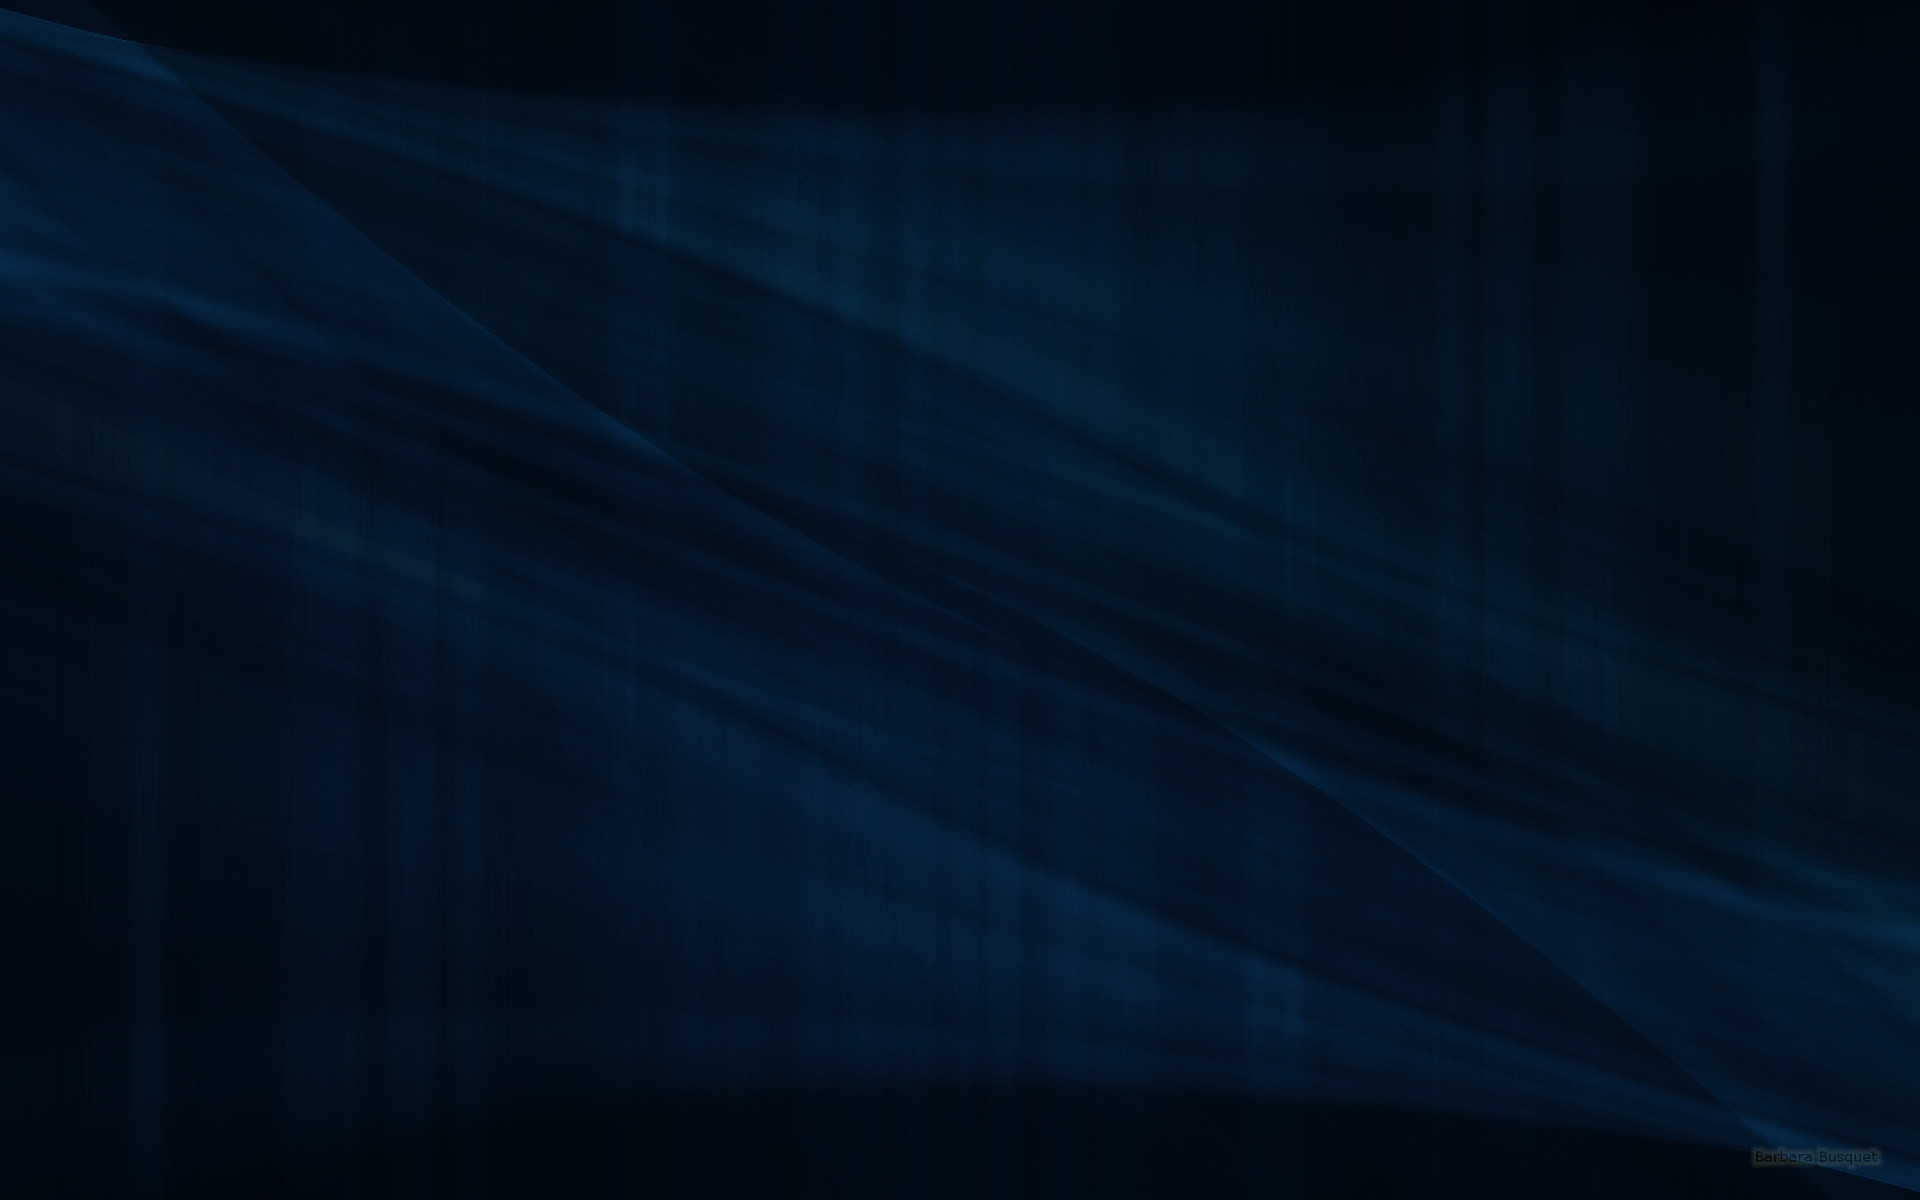 Dark Blue Abstract Wallpaper 69 Pictures